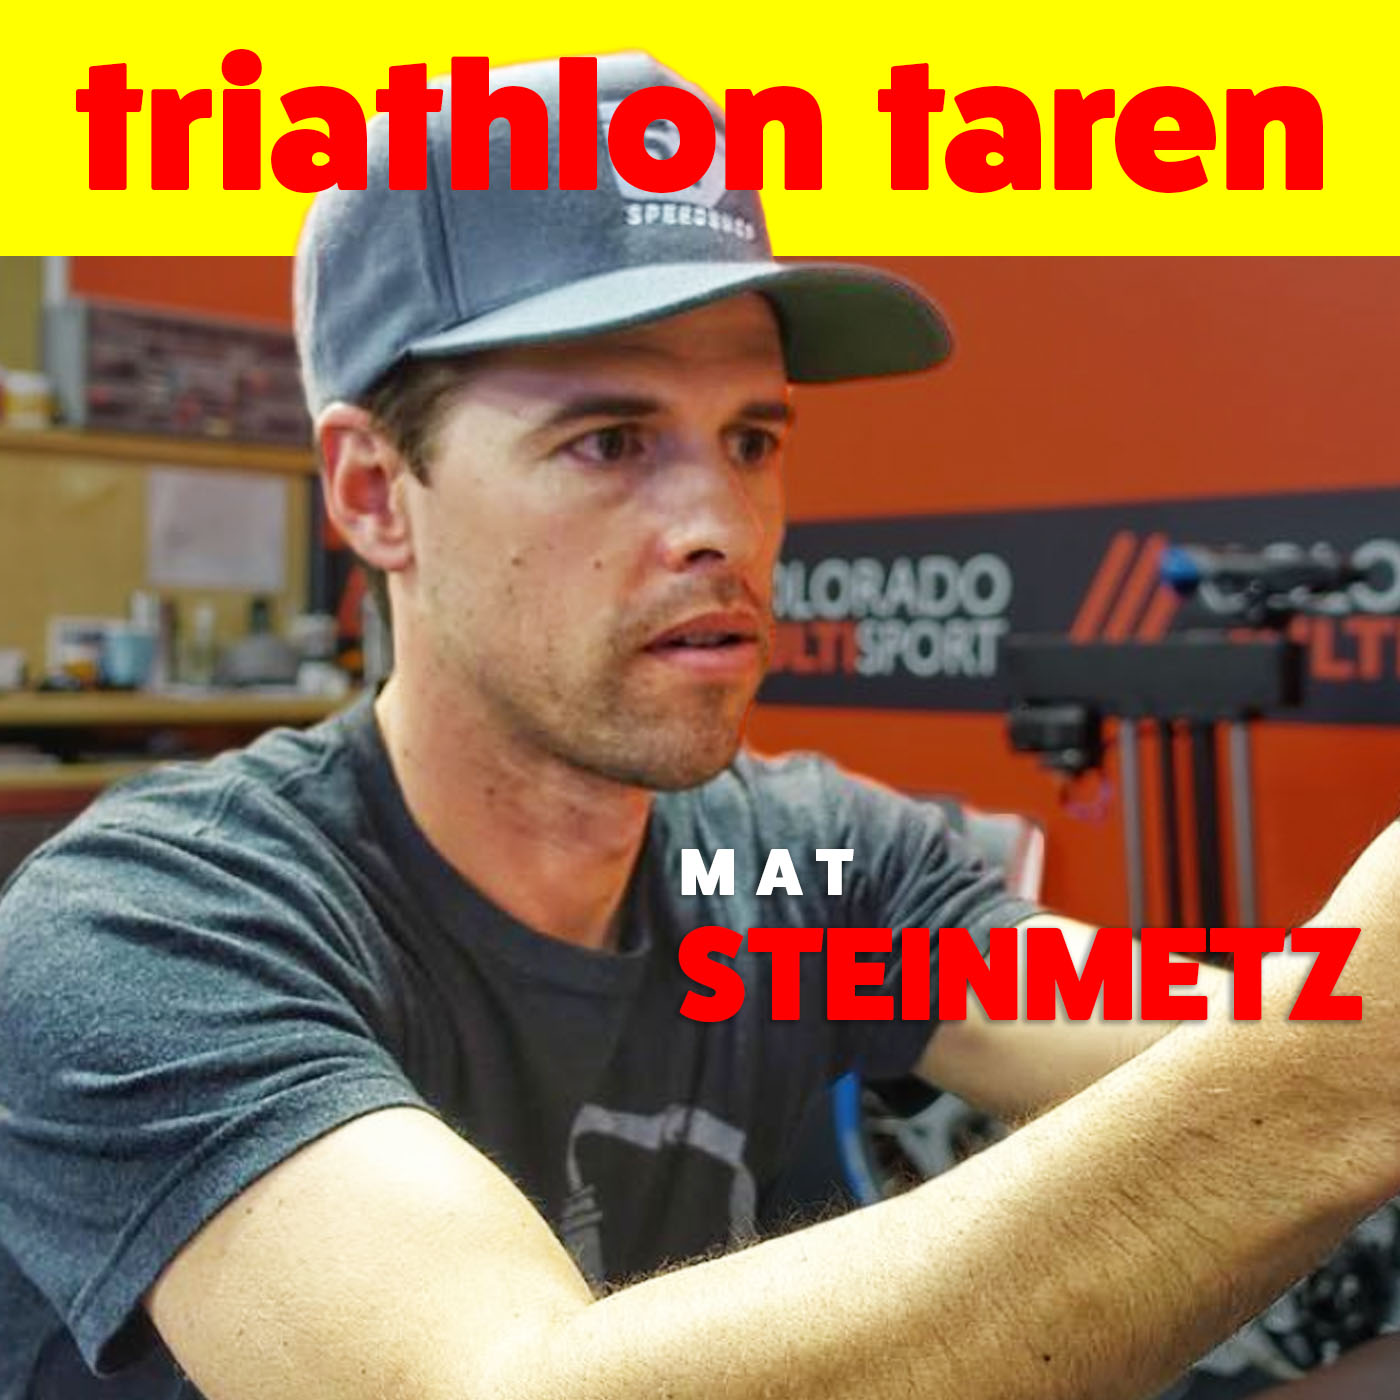 Mat Steinmetz | Faster cycling and best triathlon bike setup